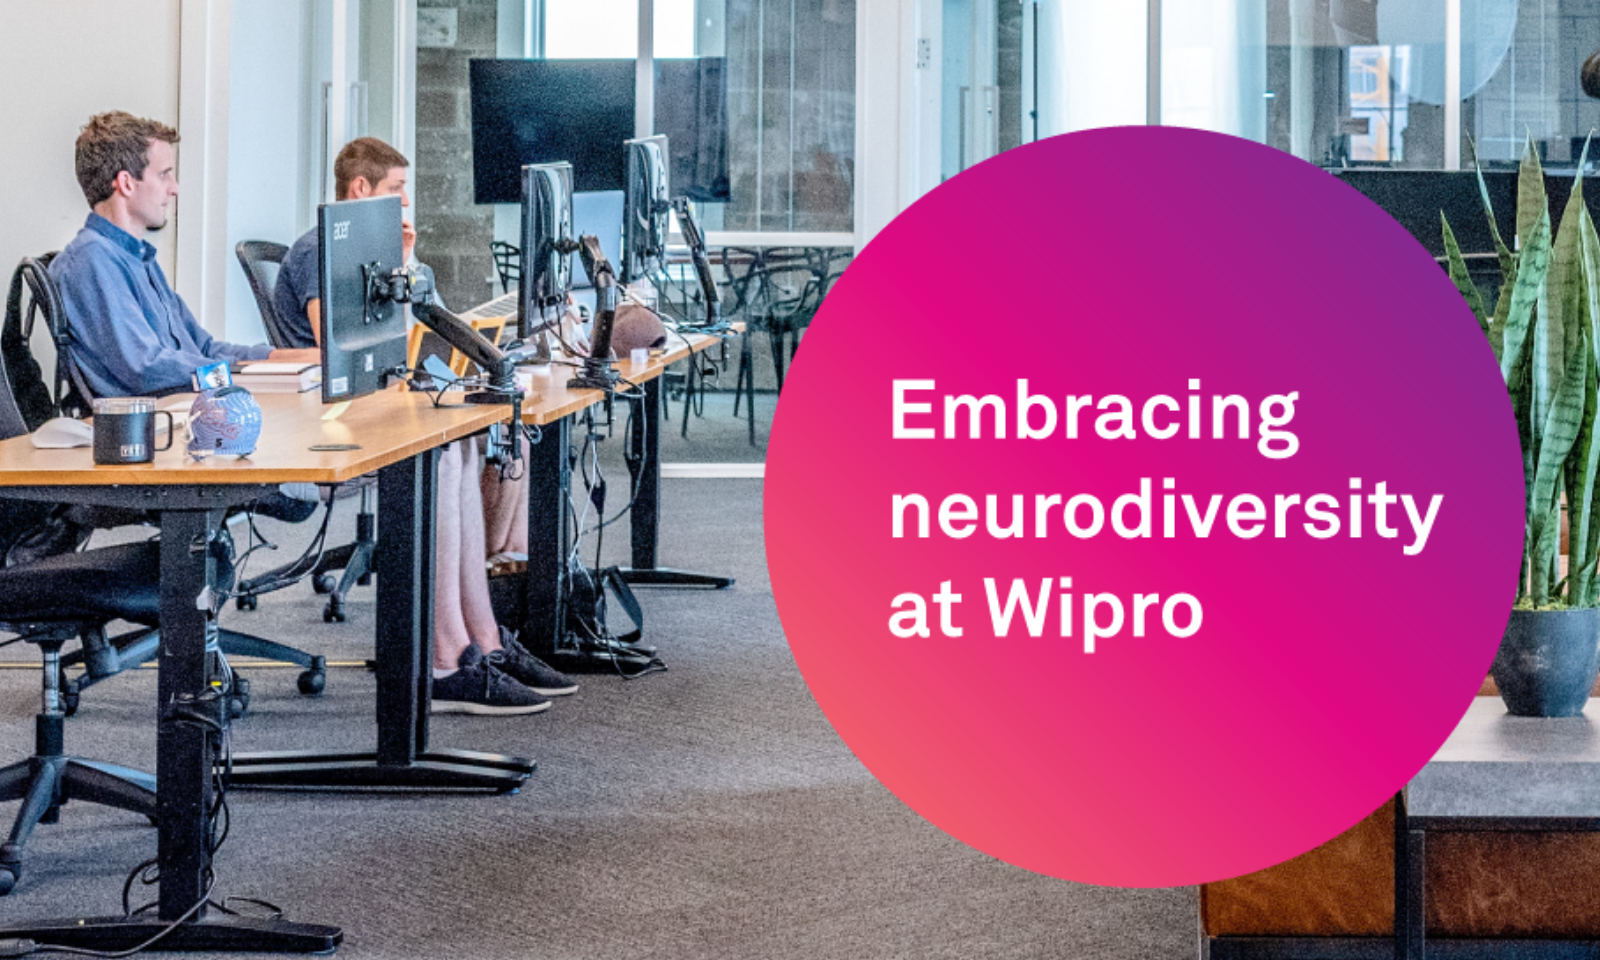 Embracing neurodiversity at Wipro  - Image of 2 males working at terminals within an office setting.